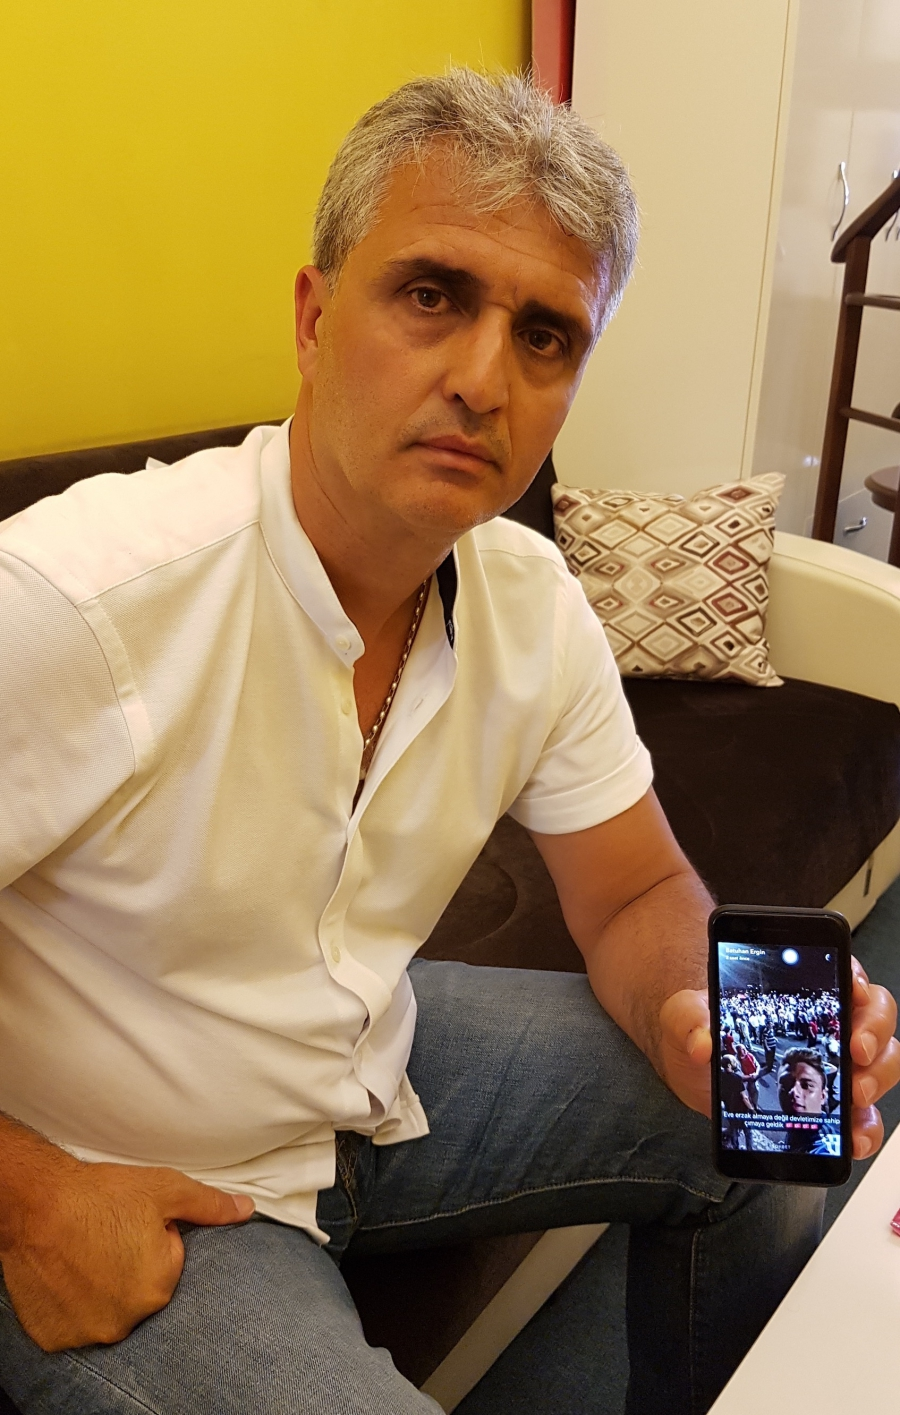 Ahmet Ergin shows a selfie his son Batuhan took from the Bosphorus Bridge, where he was shot and killed on the night of Turkey's coup attempt.